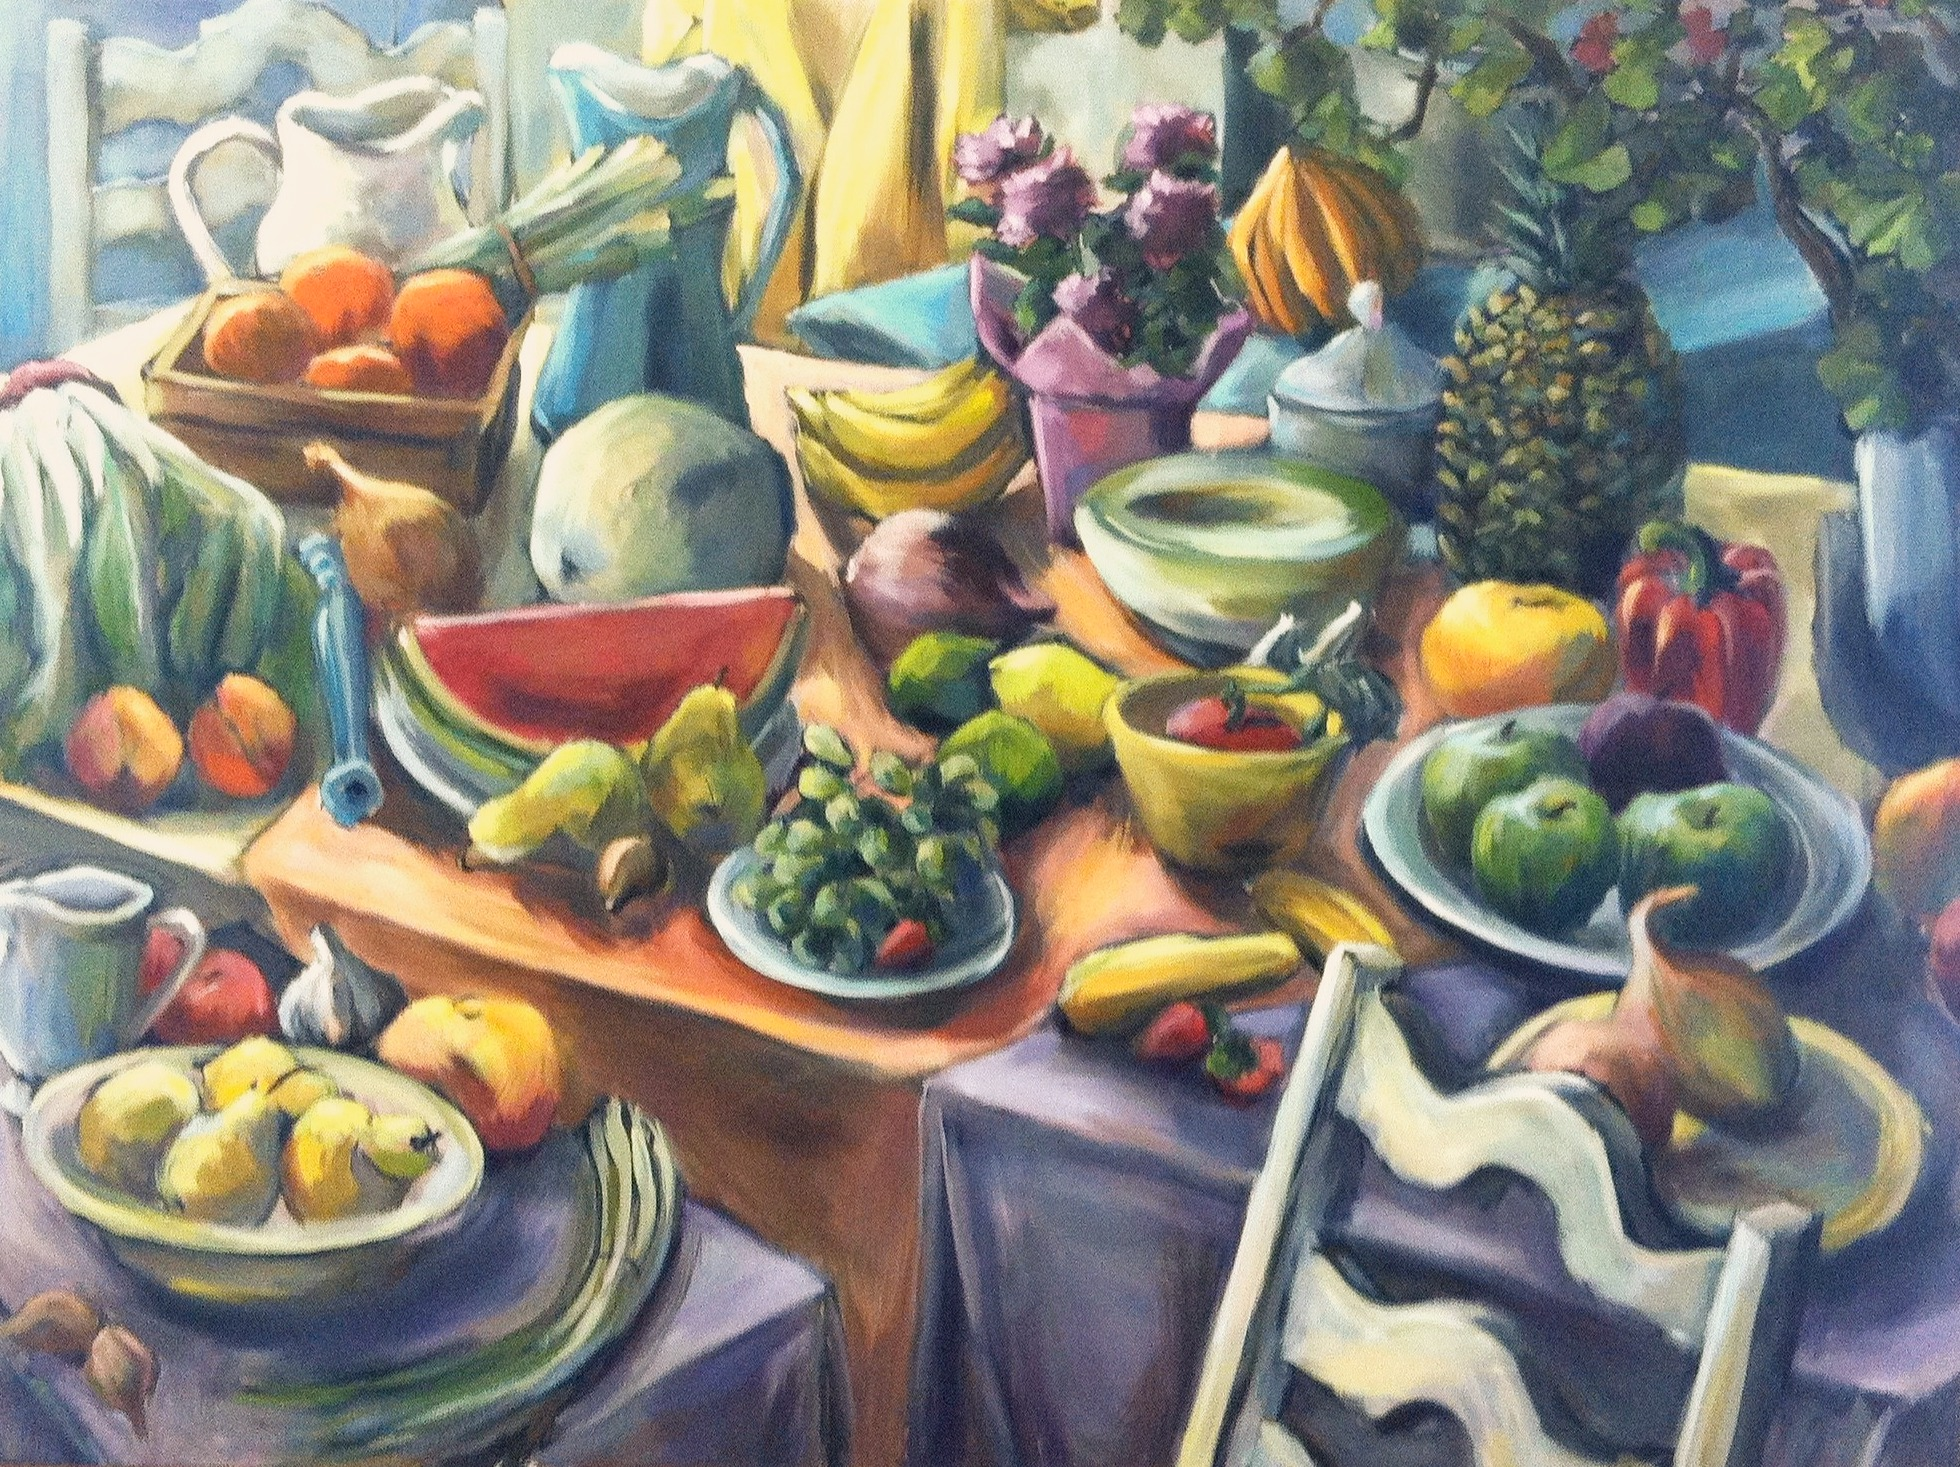 Still Life with Melons, Oil on canvas, 2011